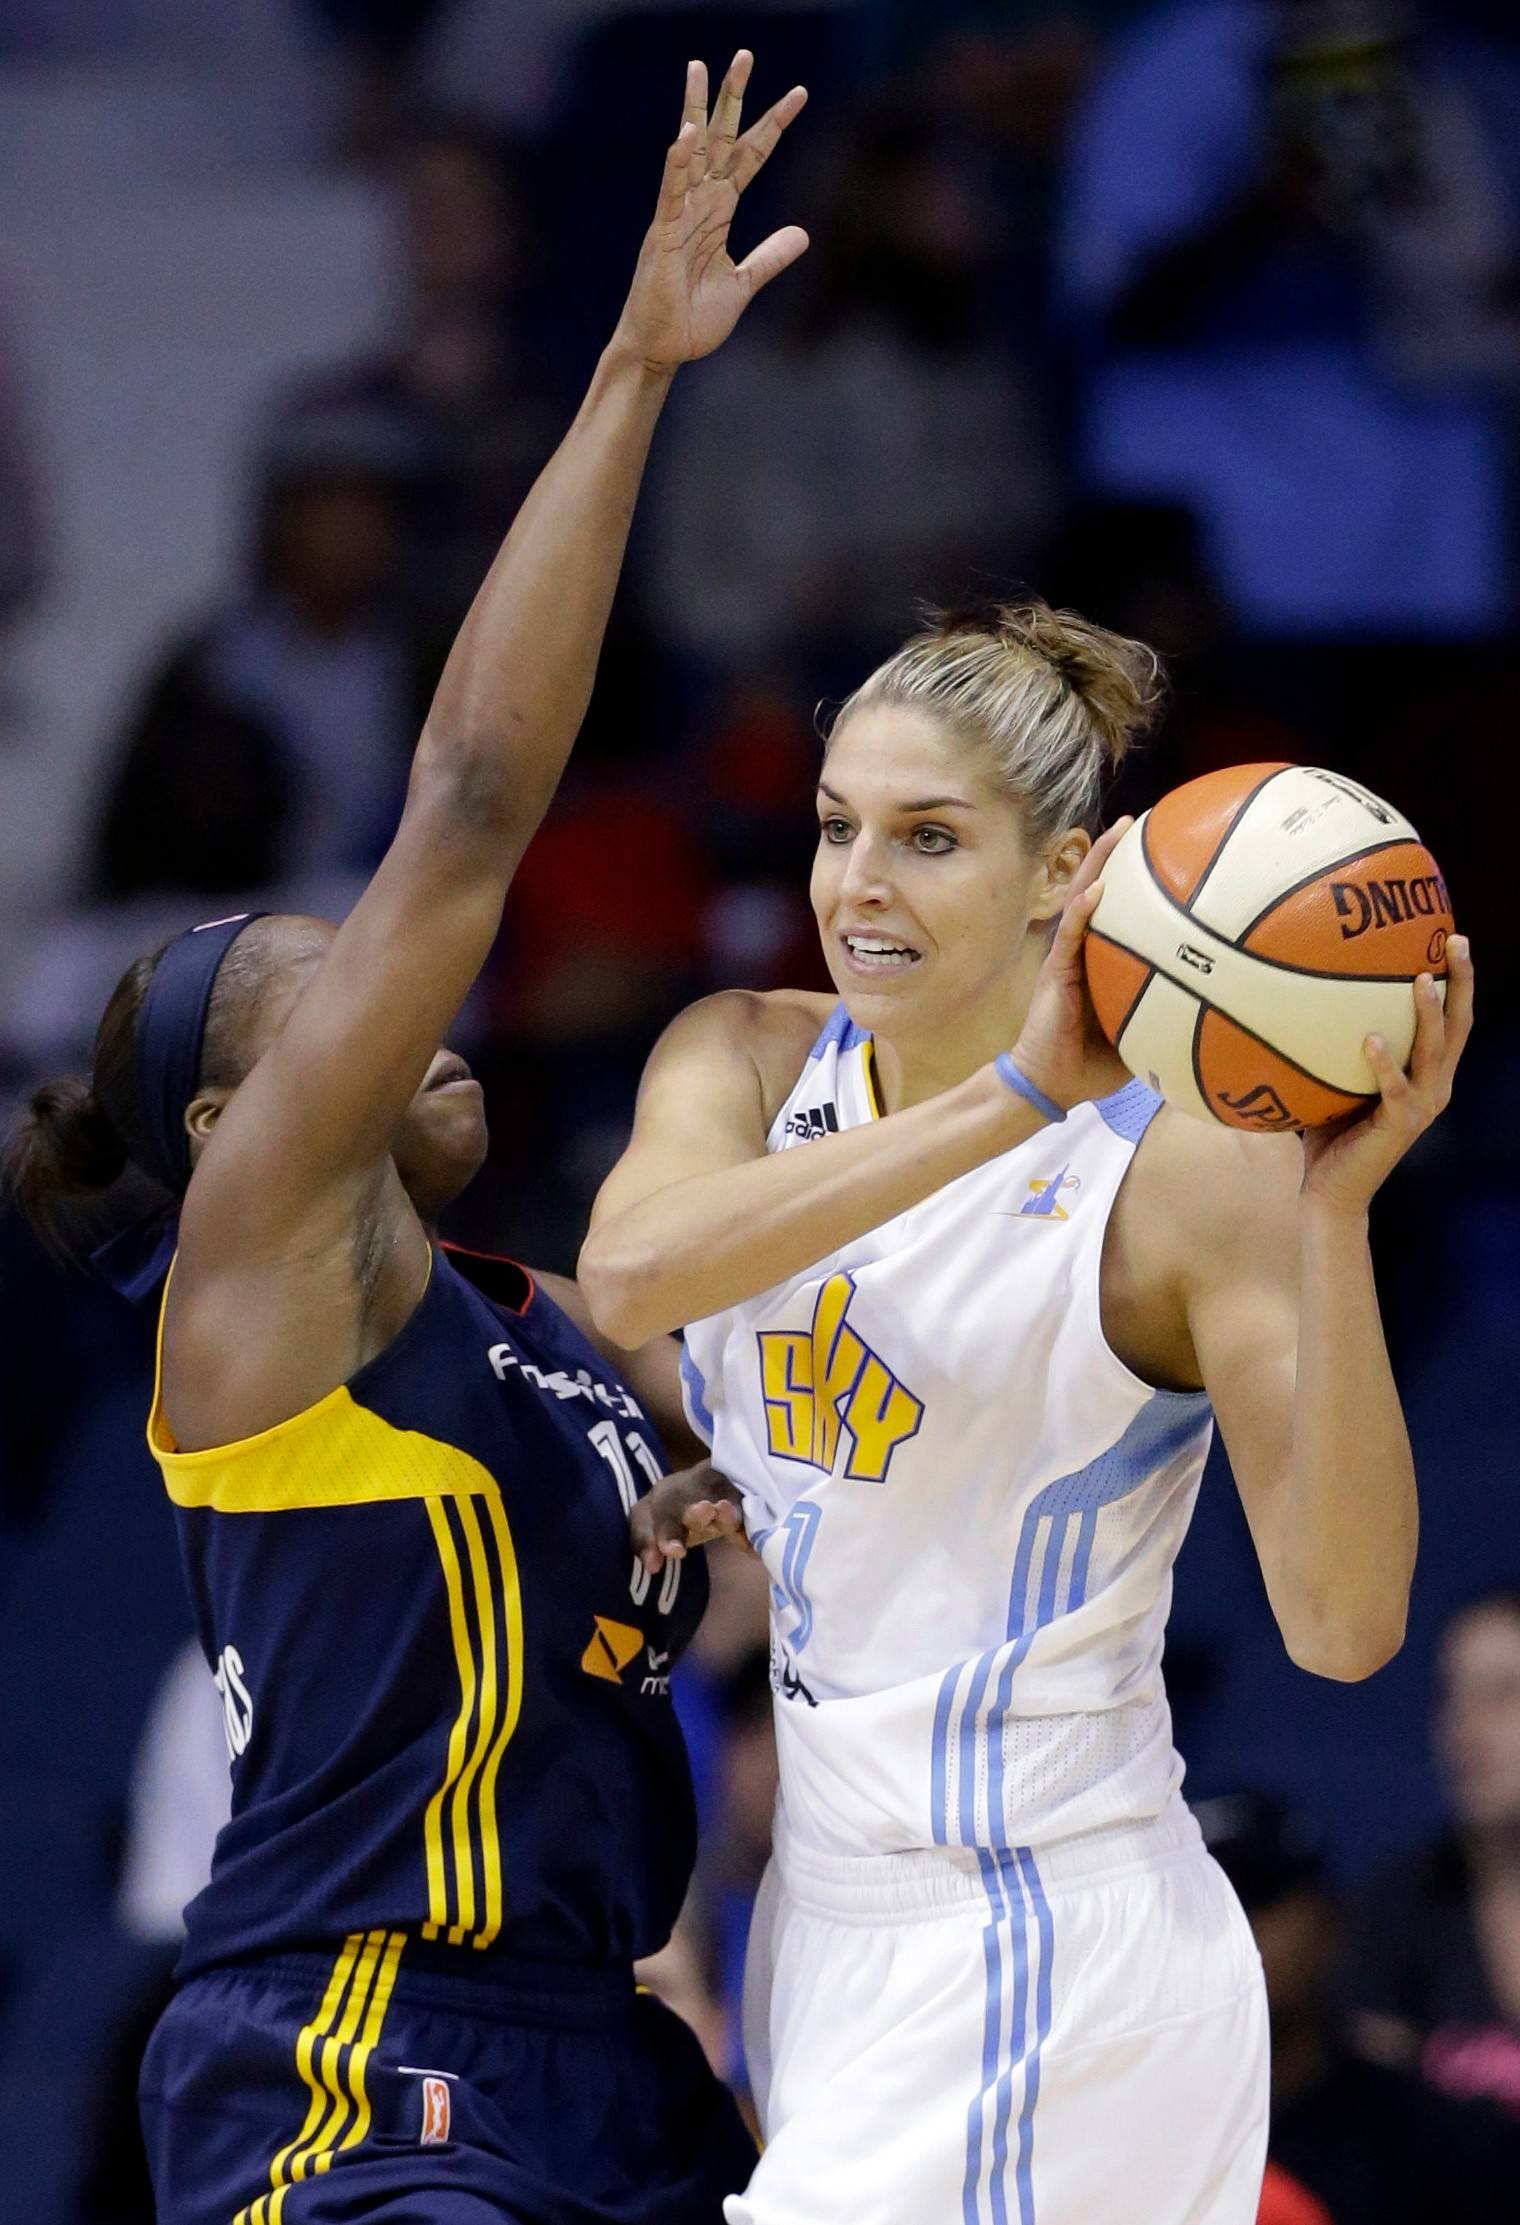 Chicago Sky star Elena Delle Donne has been voted an Eastern Conference starting berth for the WNBA All-Star Game, the second straight season she has earned that honor.